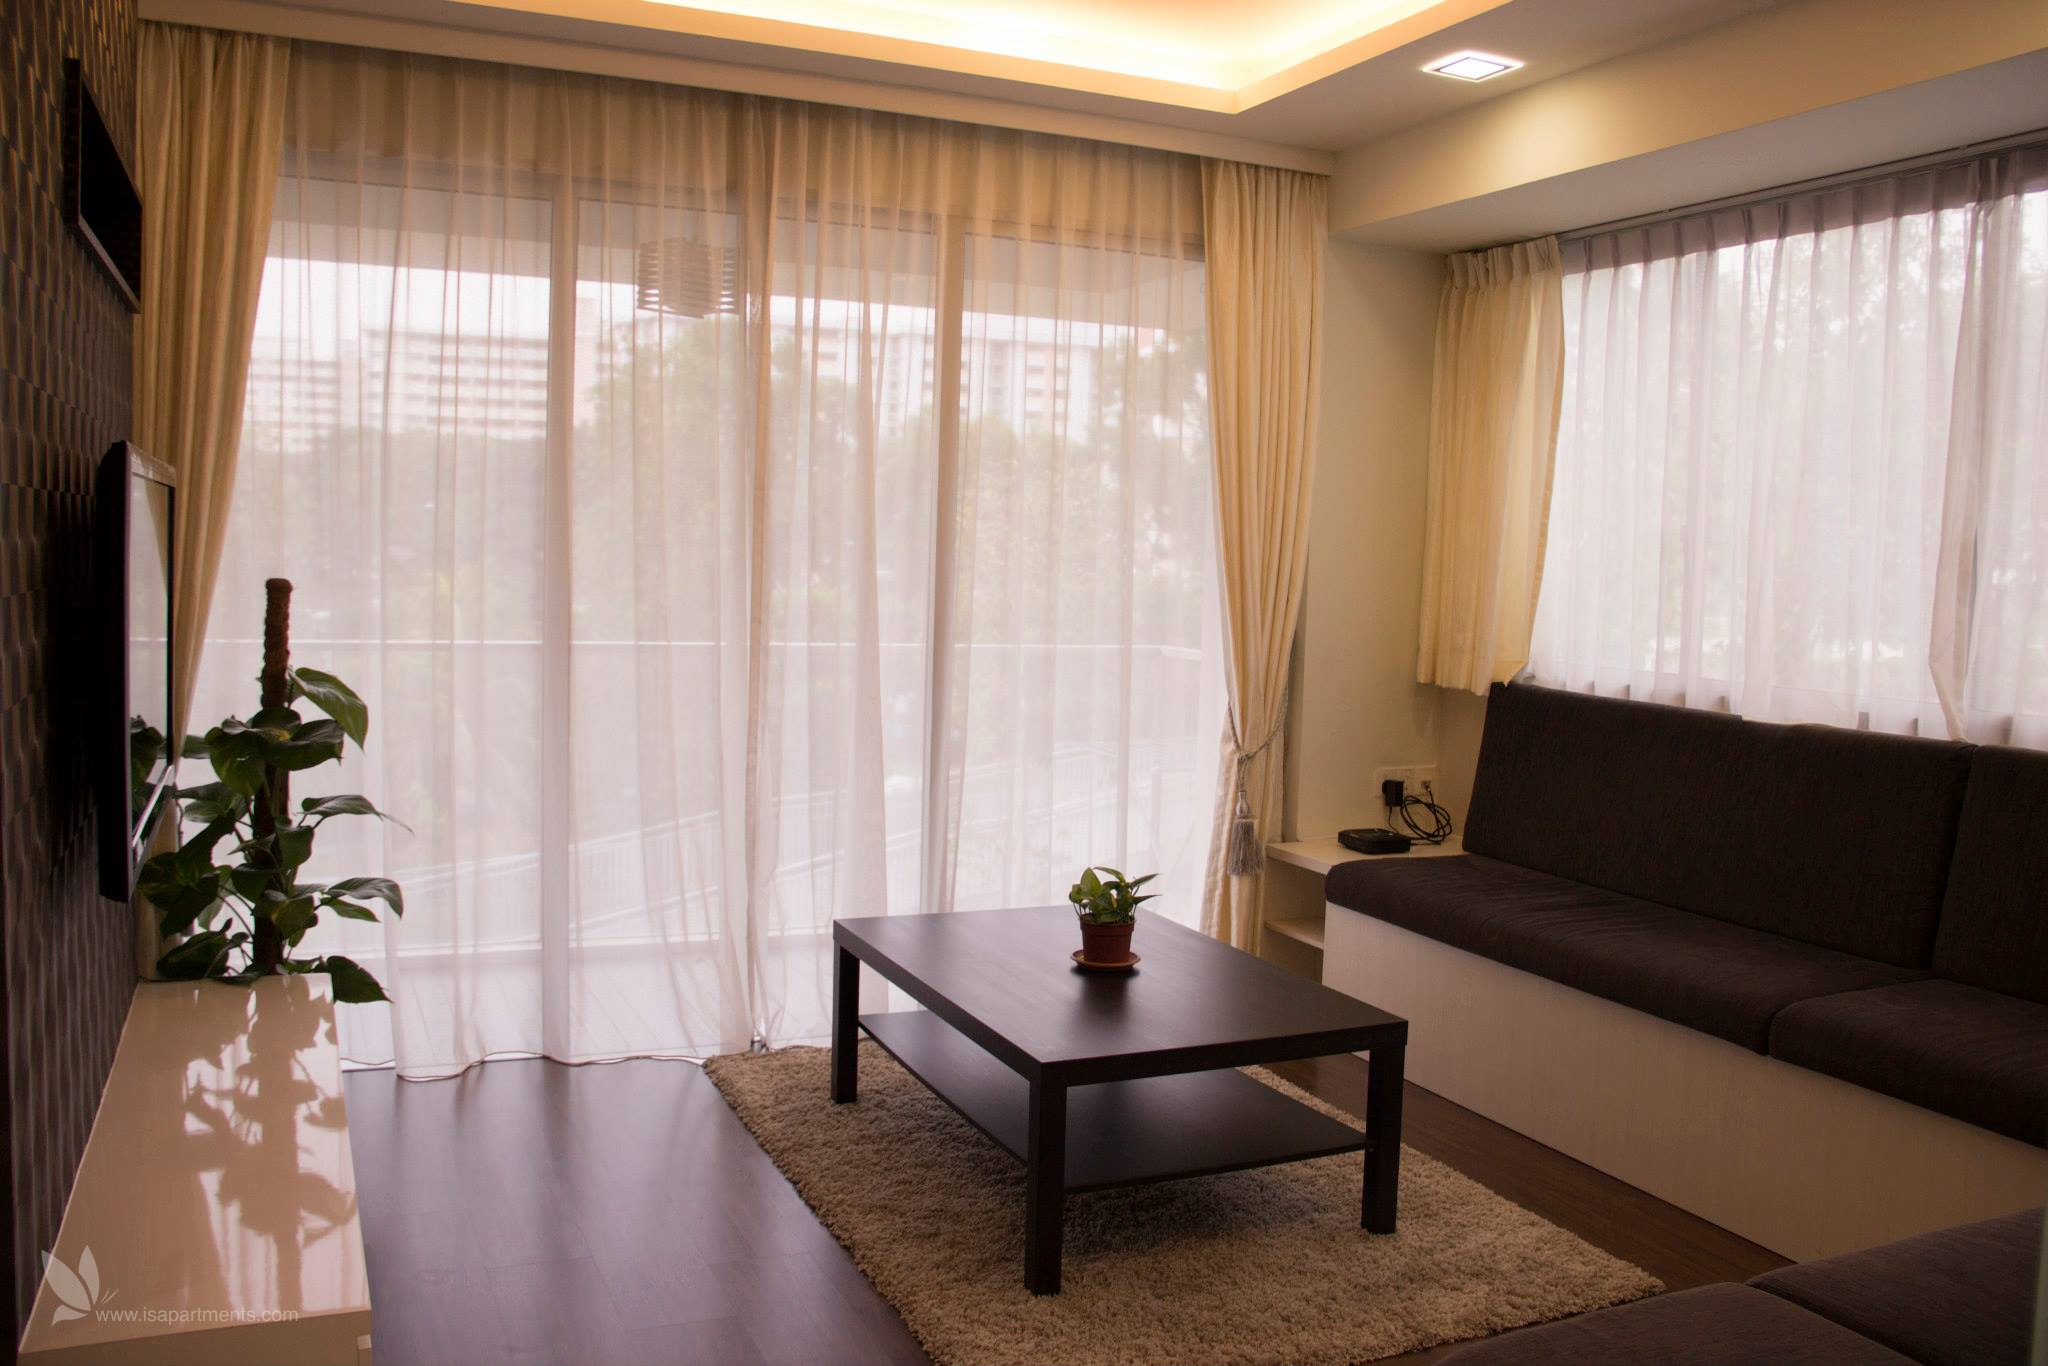 Facilities at The Parc Condo include a lap pool, spa pool, BBQ pits, gym, fitness station, and Jacuzzi.  This  two-bedroom serviced apartment is 1,200 sq.m ,  and can sleep 3 people maximum.  The apar